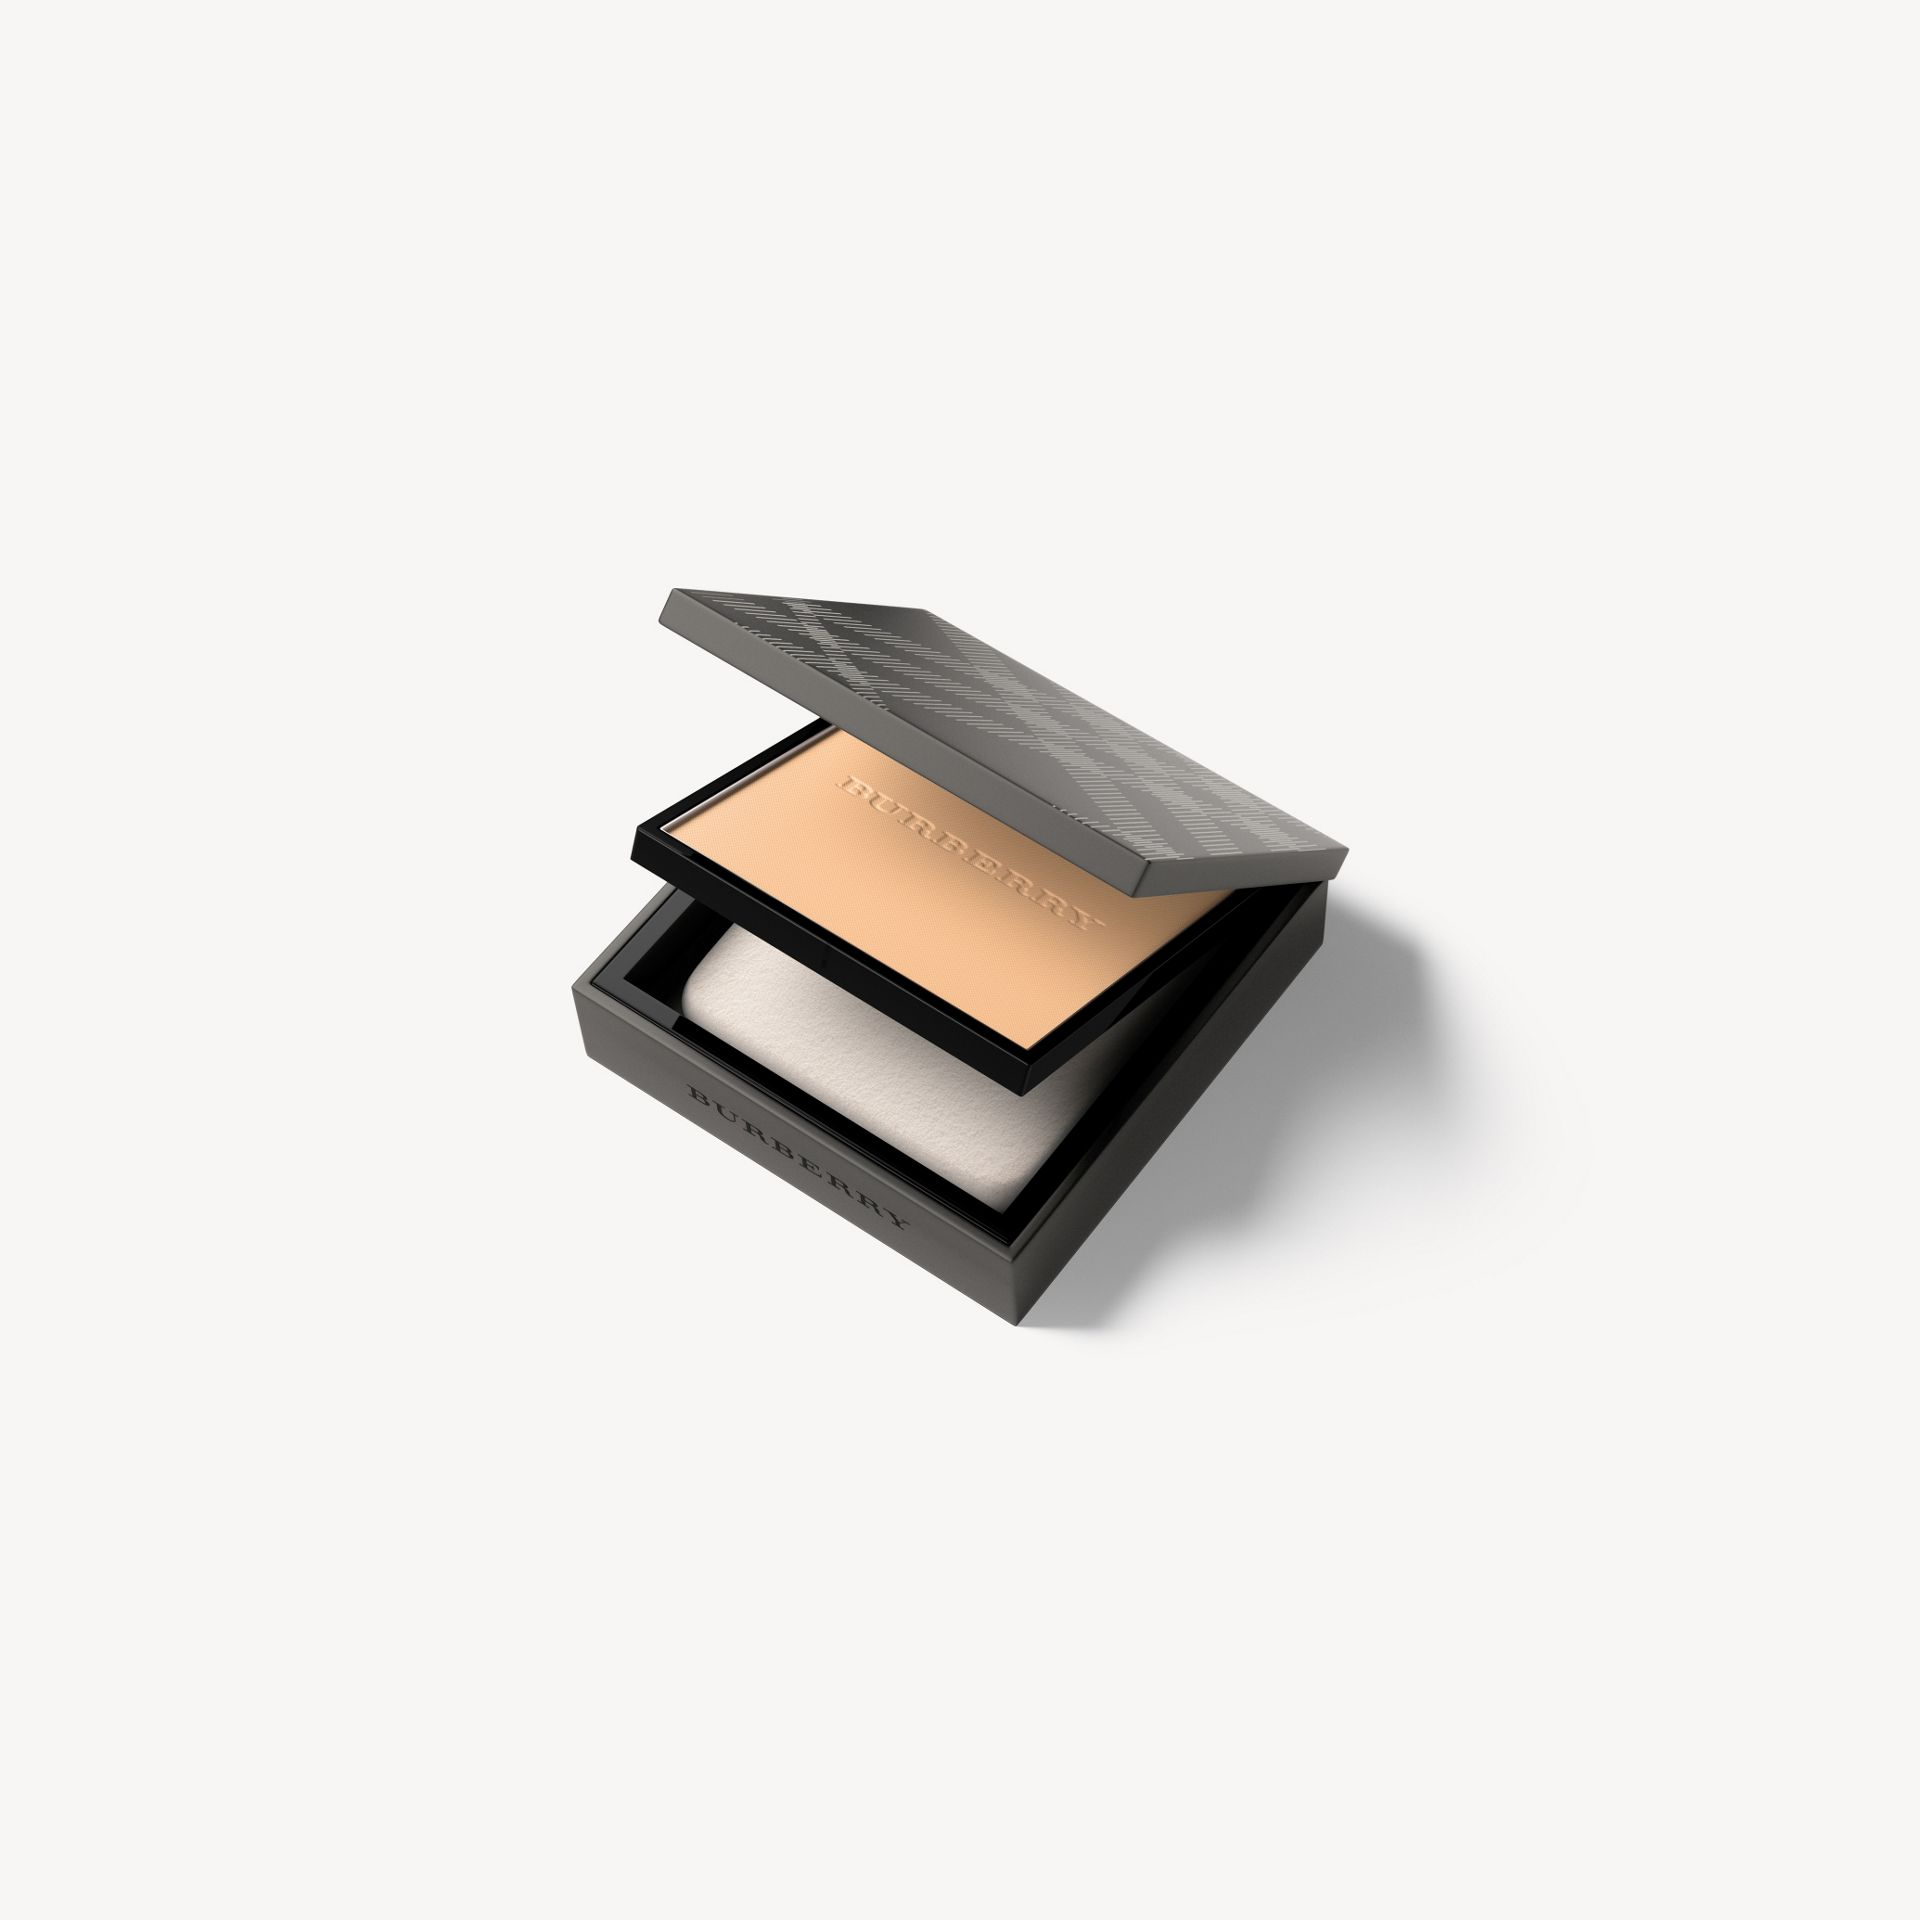 Light honey 10 Burberry Cashmere Compact - Light Honey No.10 - immagine della galleria 1